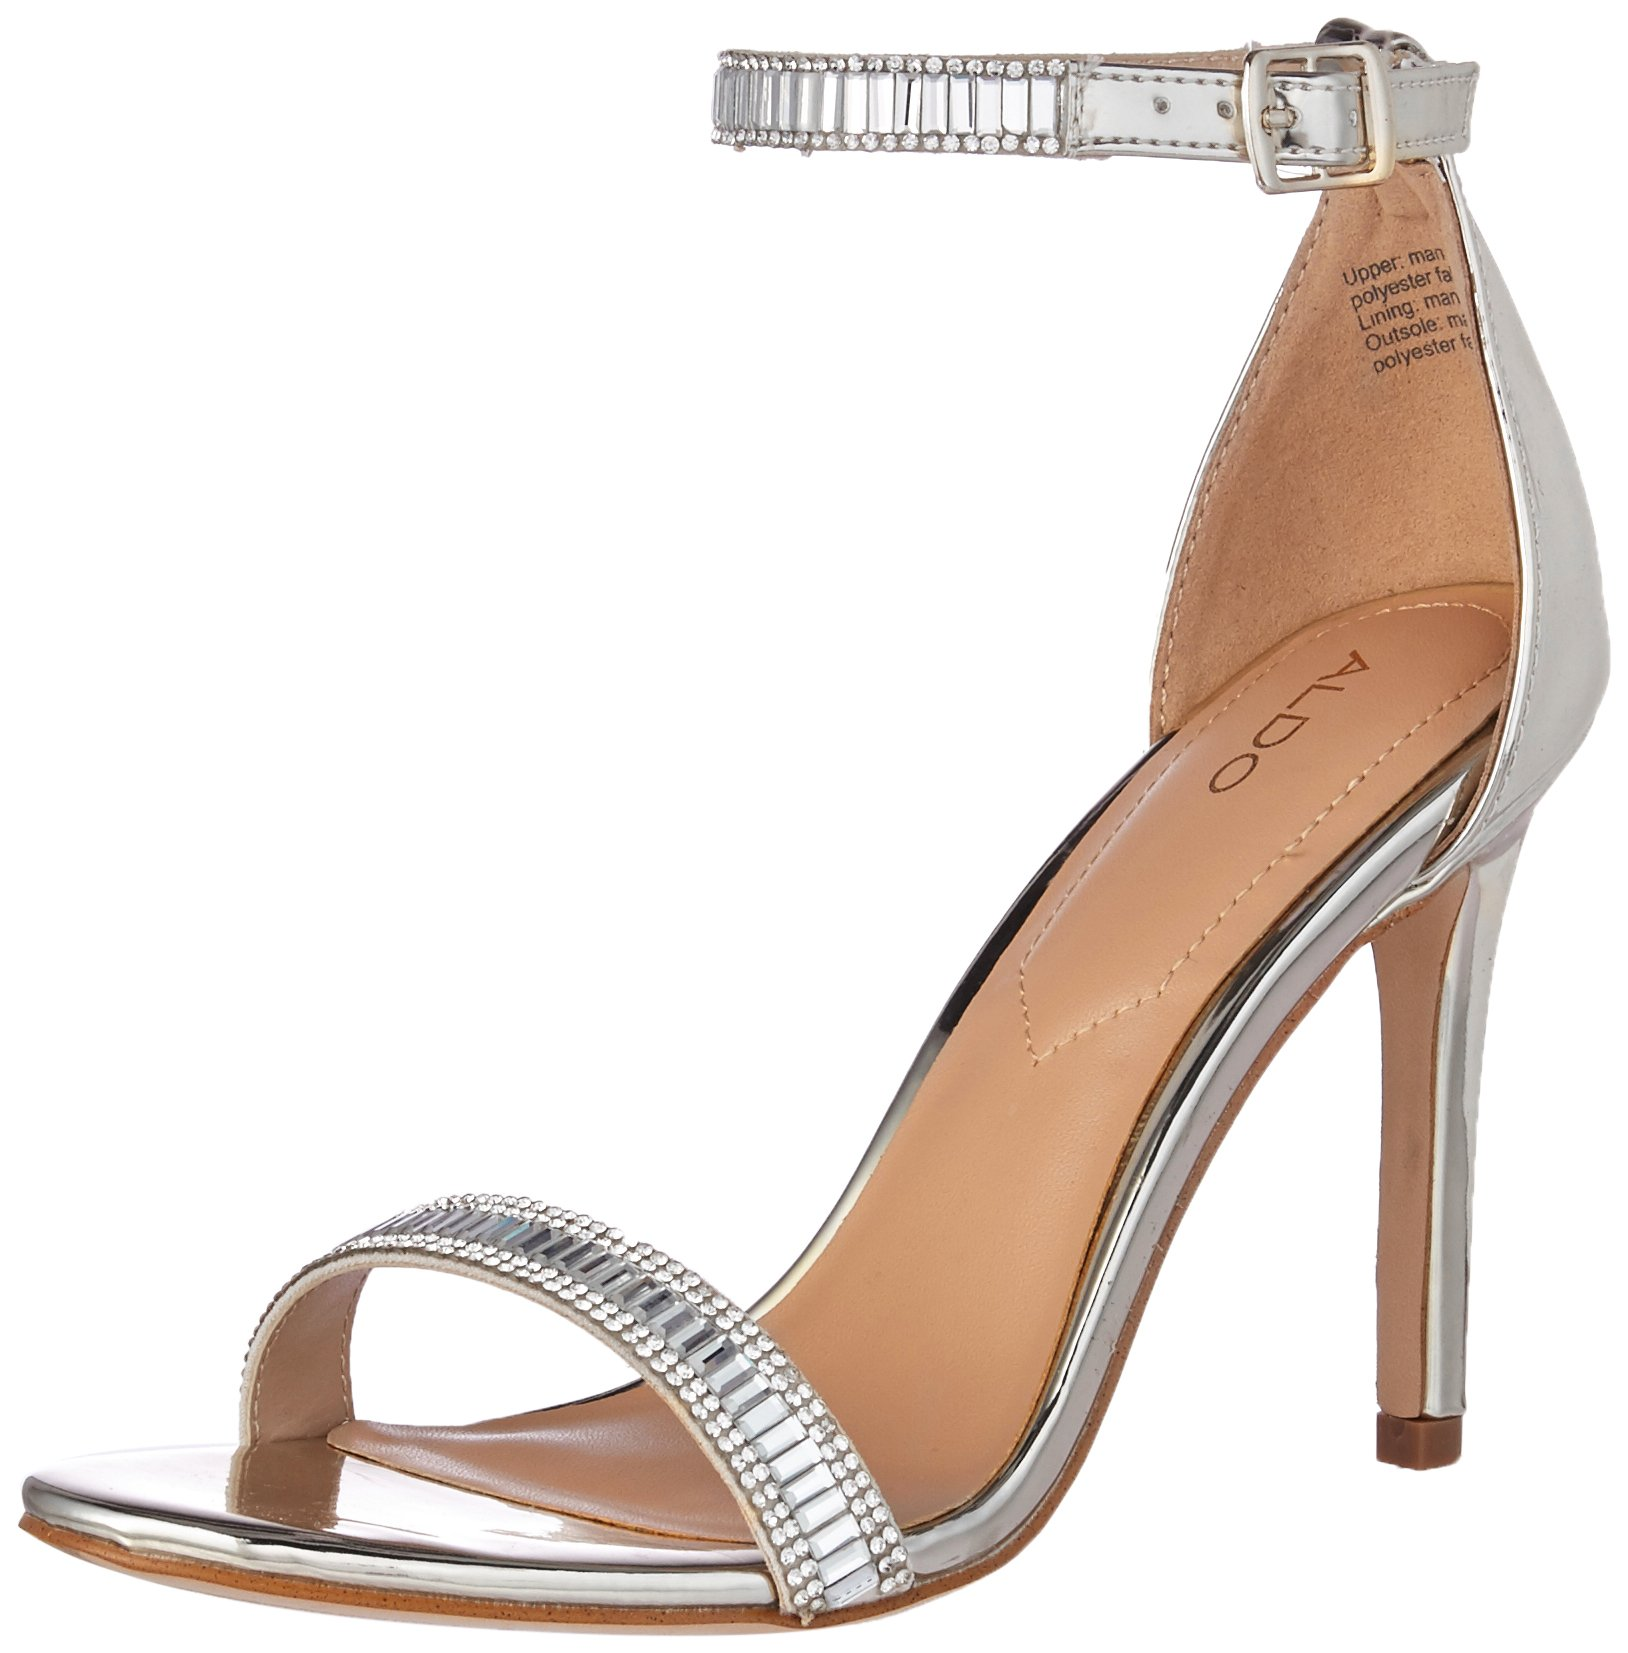 ALDO Women's Sevoredia Dress Sandal, Silver, 7.5 B US